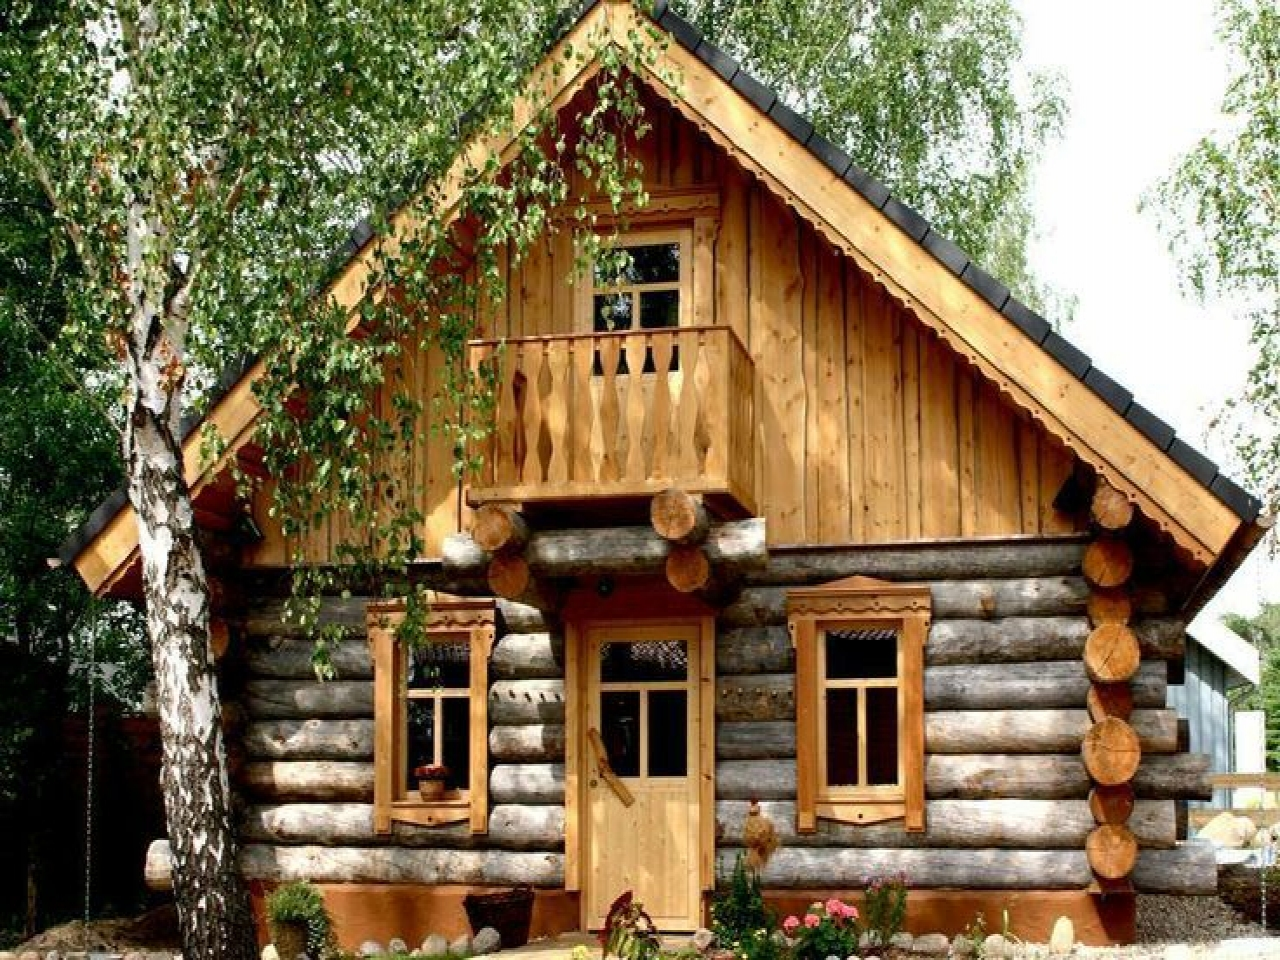 Gorgeous Rustic Log Cabin Log Cabin In The Woods Rustic